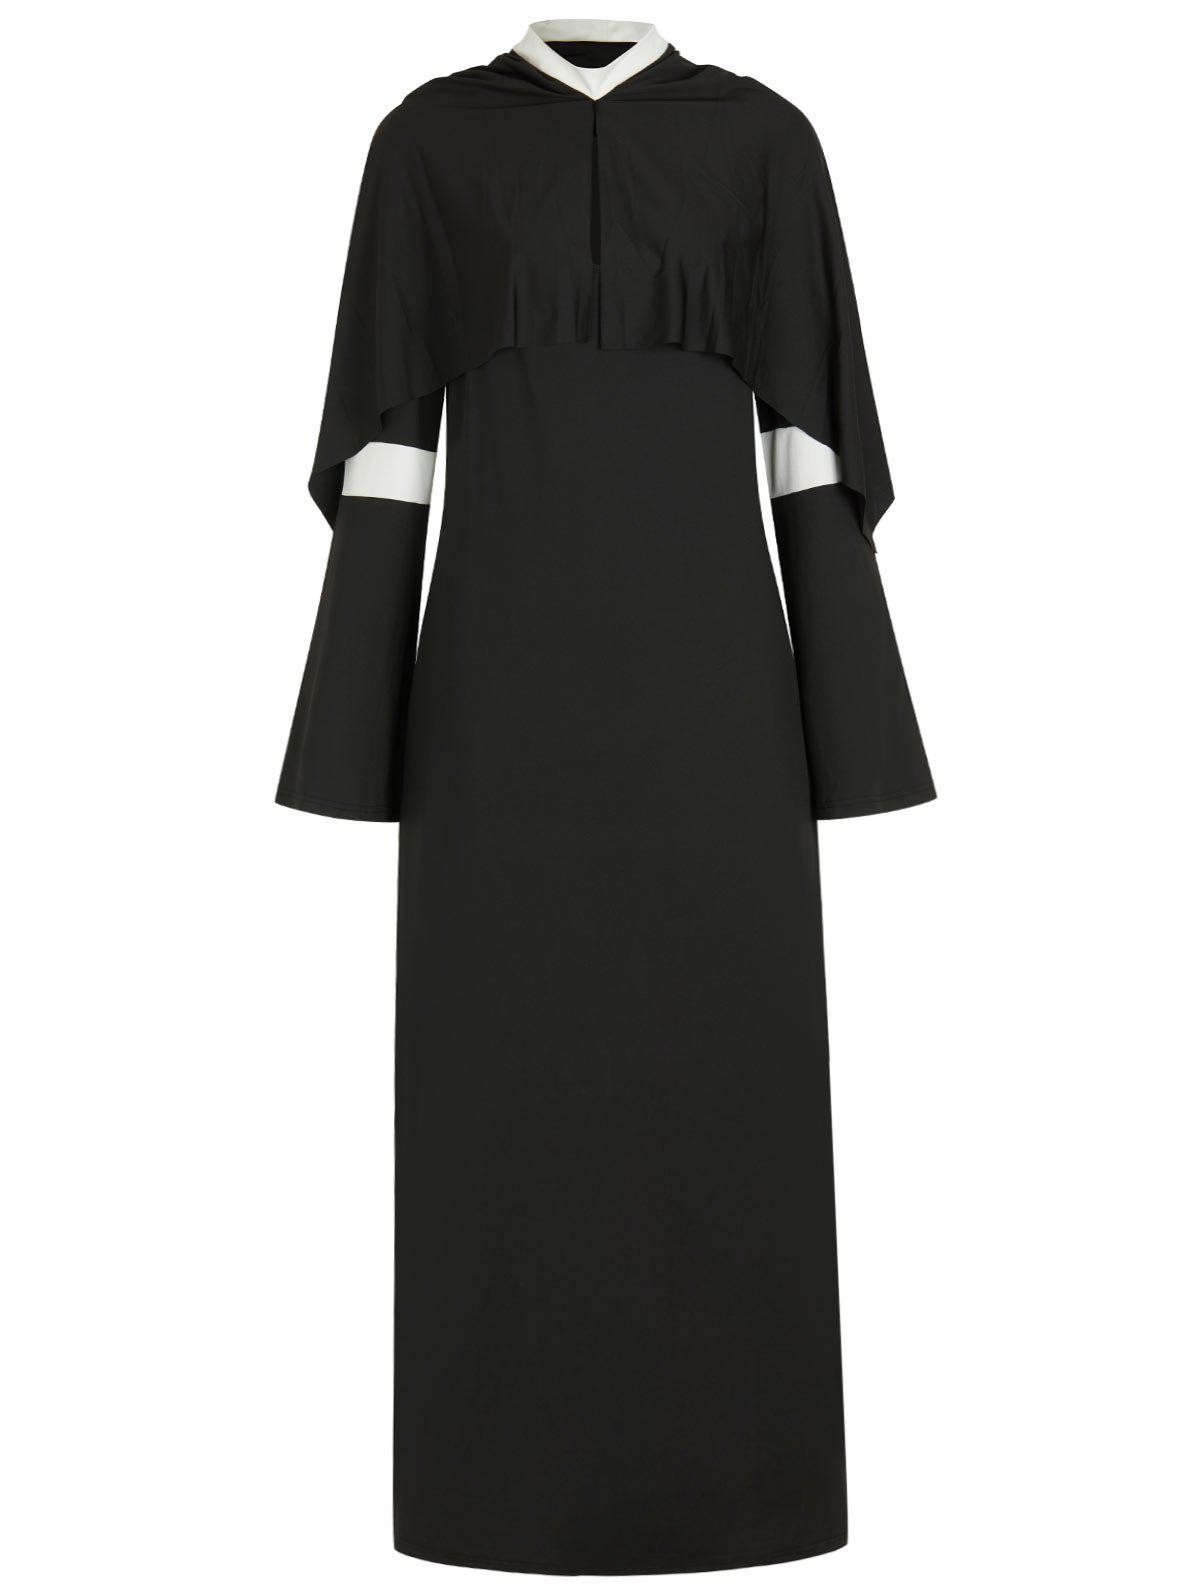 Affordable Plus Size Halloween Cosplay Nun Costume Slit Dress